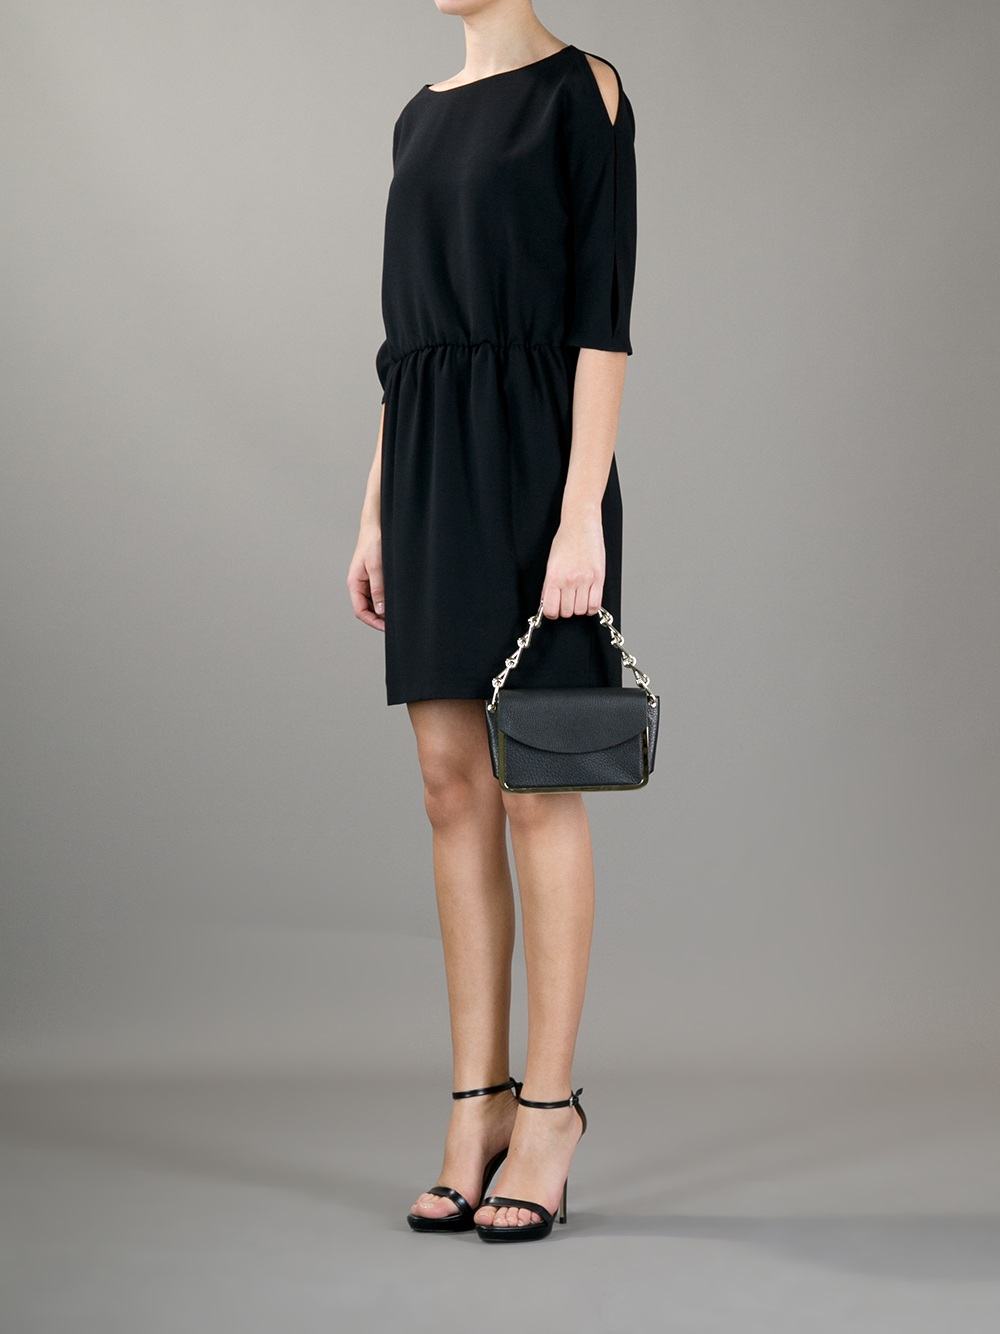 Reed Krakoff Chain Link Handle Clutch In Black Lyst